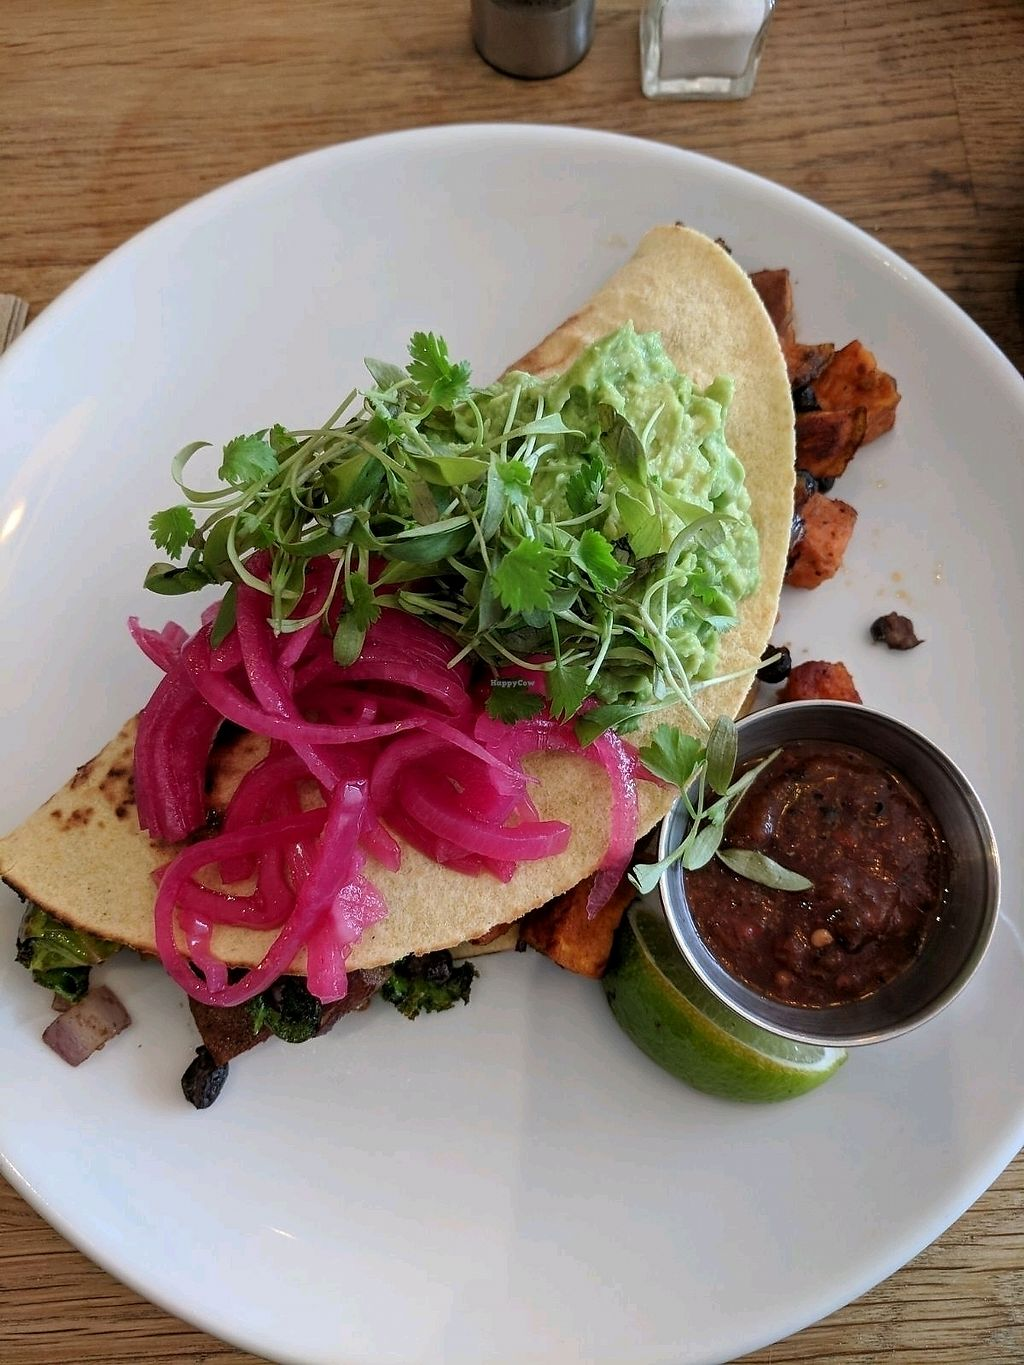 """Photo of The Pantry  by <a href=""""/members/profile/Danmiddleton"""">Danmiddleton</a> <br/>Vegan quesadilla  <br/> April 15, 2018  - <a href='/contact/abuse/image/103851/386493'>Report</a>"""